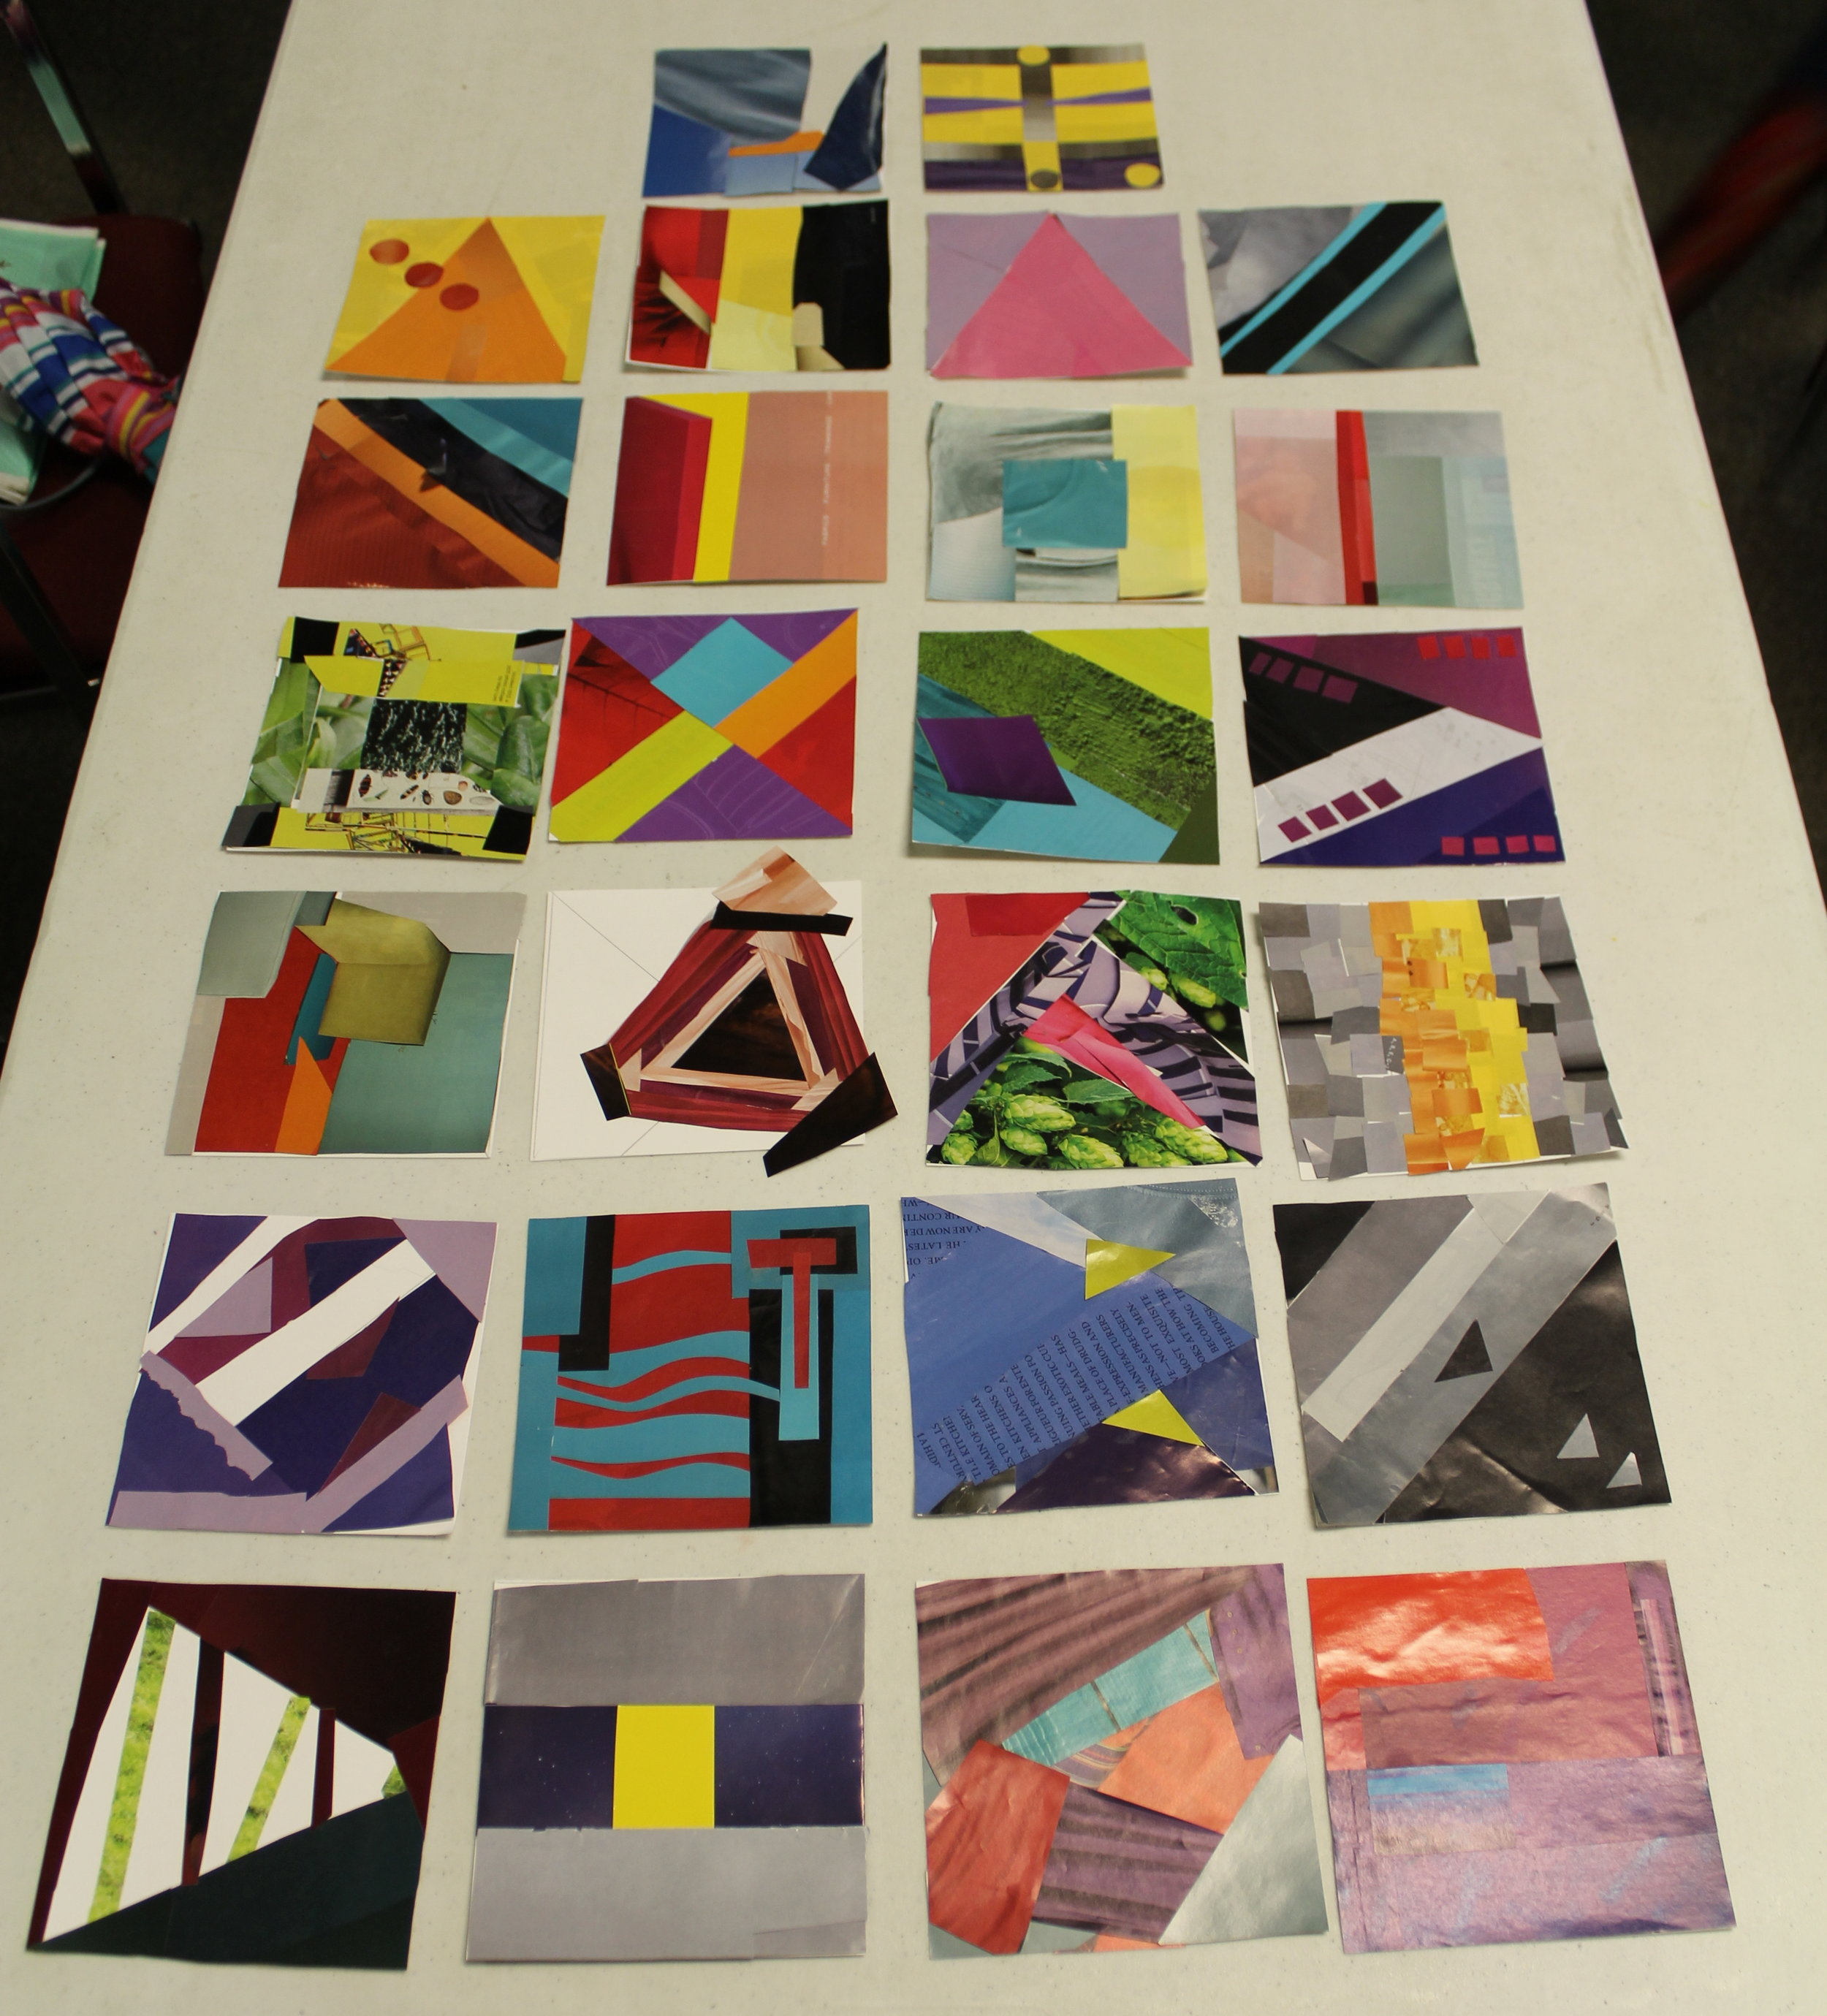 Our members created paper quilt blocks from magazine scraps to test their color theory knowledge.